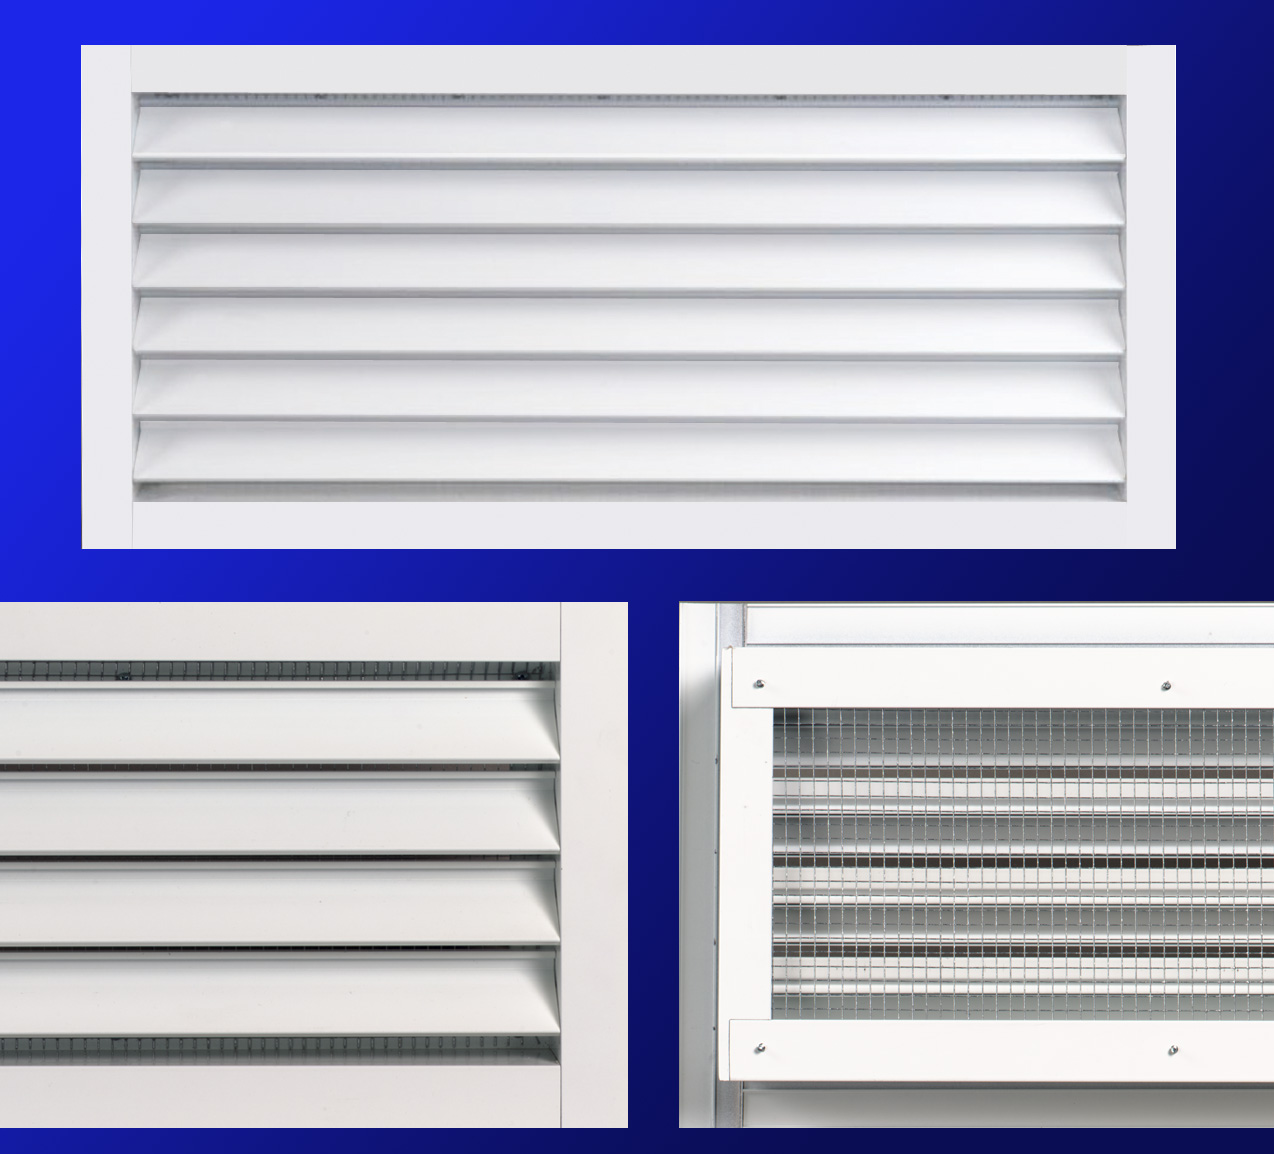 #0C1274 Louvers Vents And Grilles For The HVAC Industry 2 BL200  Recommended 7067 Wall Louvers Vents pics with 1274x1154 px on helpvideos.info - Air Conditioners, Air Coolers and more